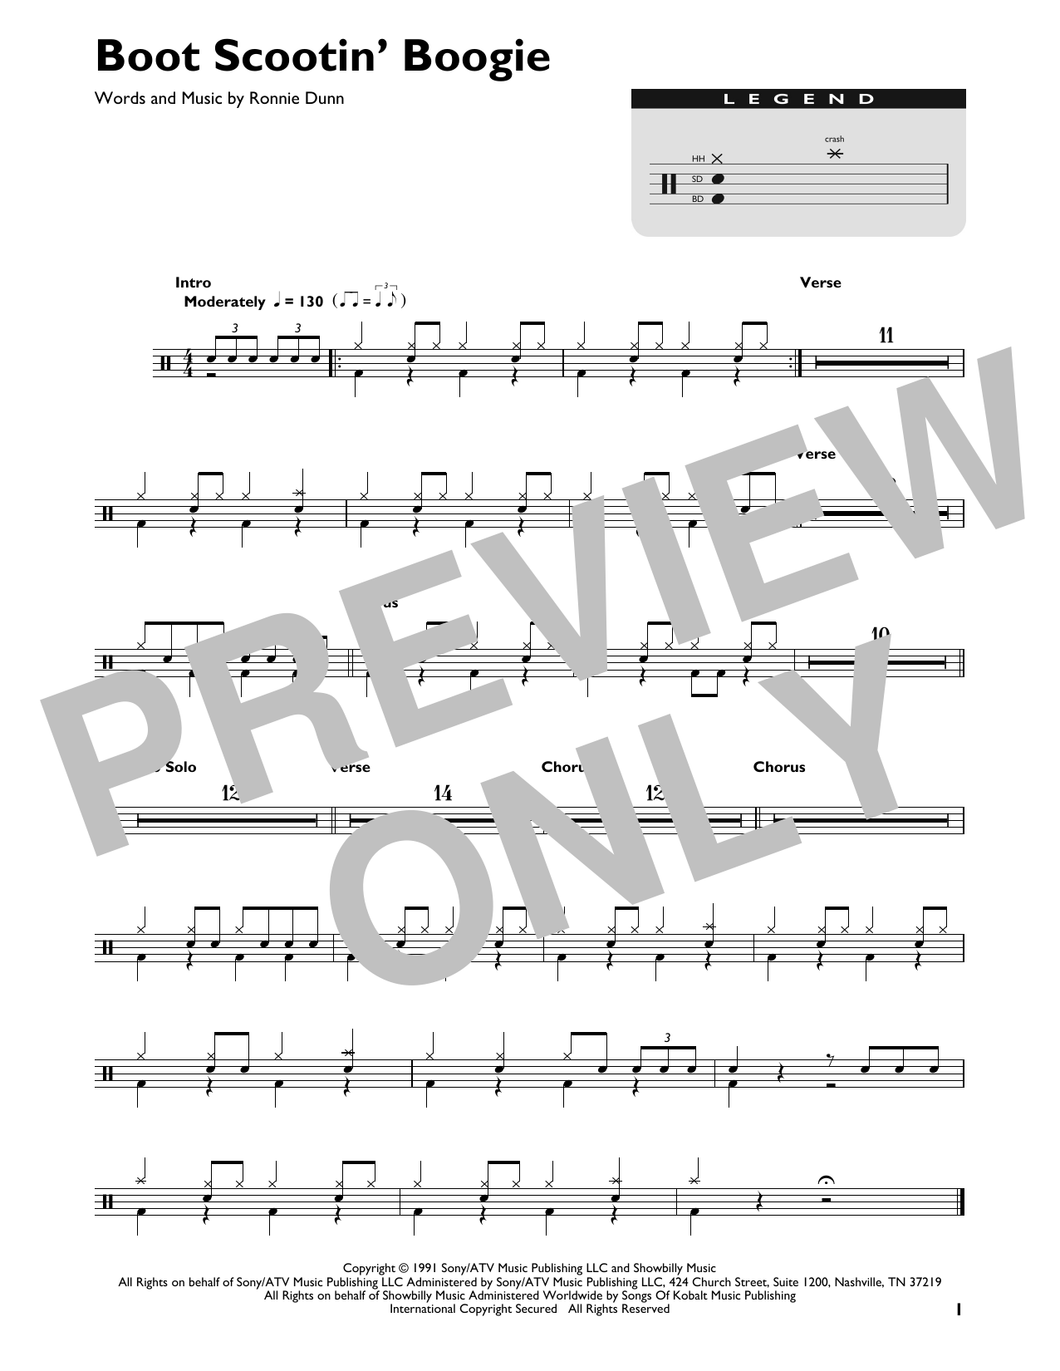 Boot Scootin' Boogie - Brooks & Dunn - Full Drum Transcription / Drum Sheet Music - SheetMusicDirect DT